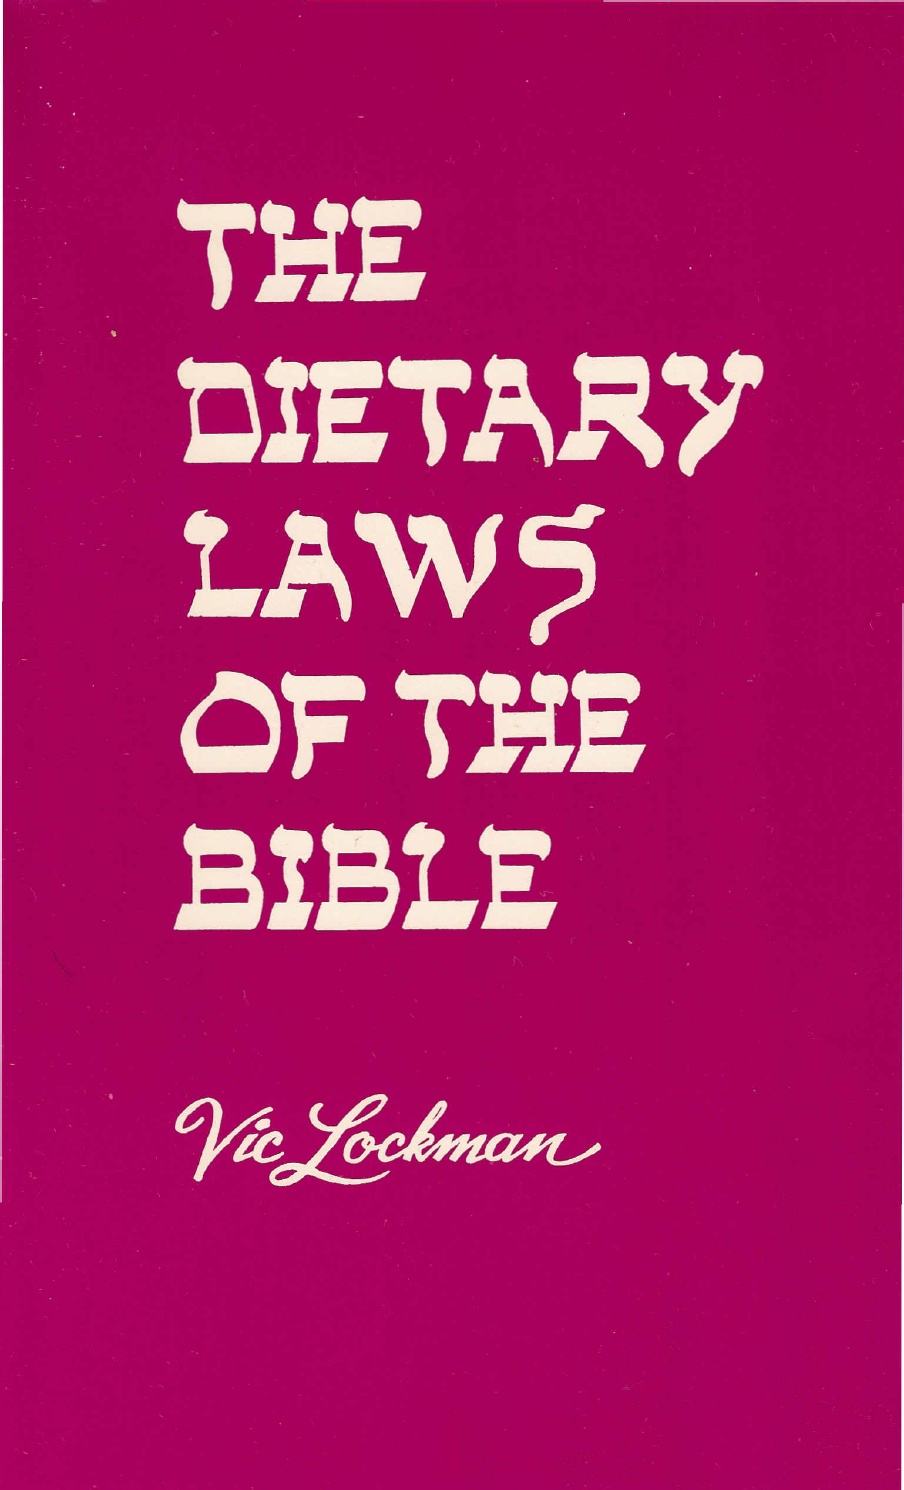 The dietary laws of the Bible